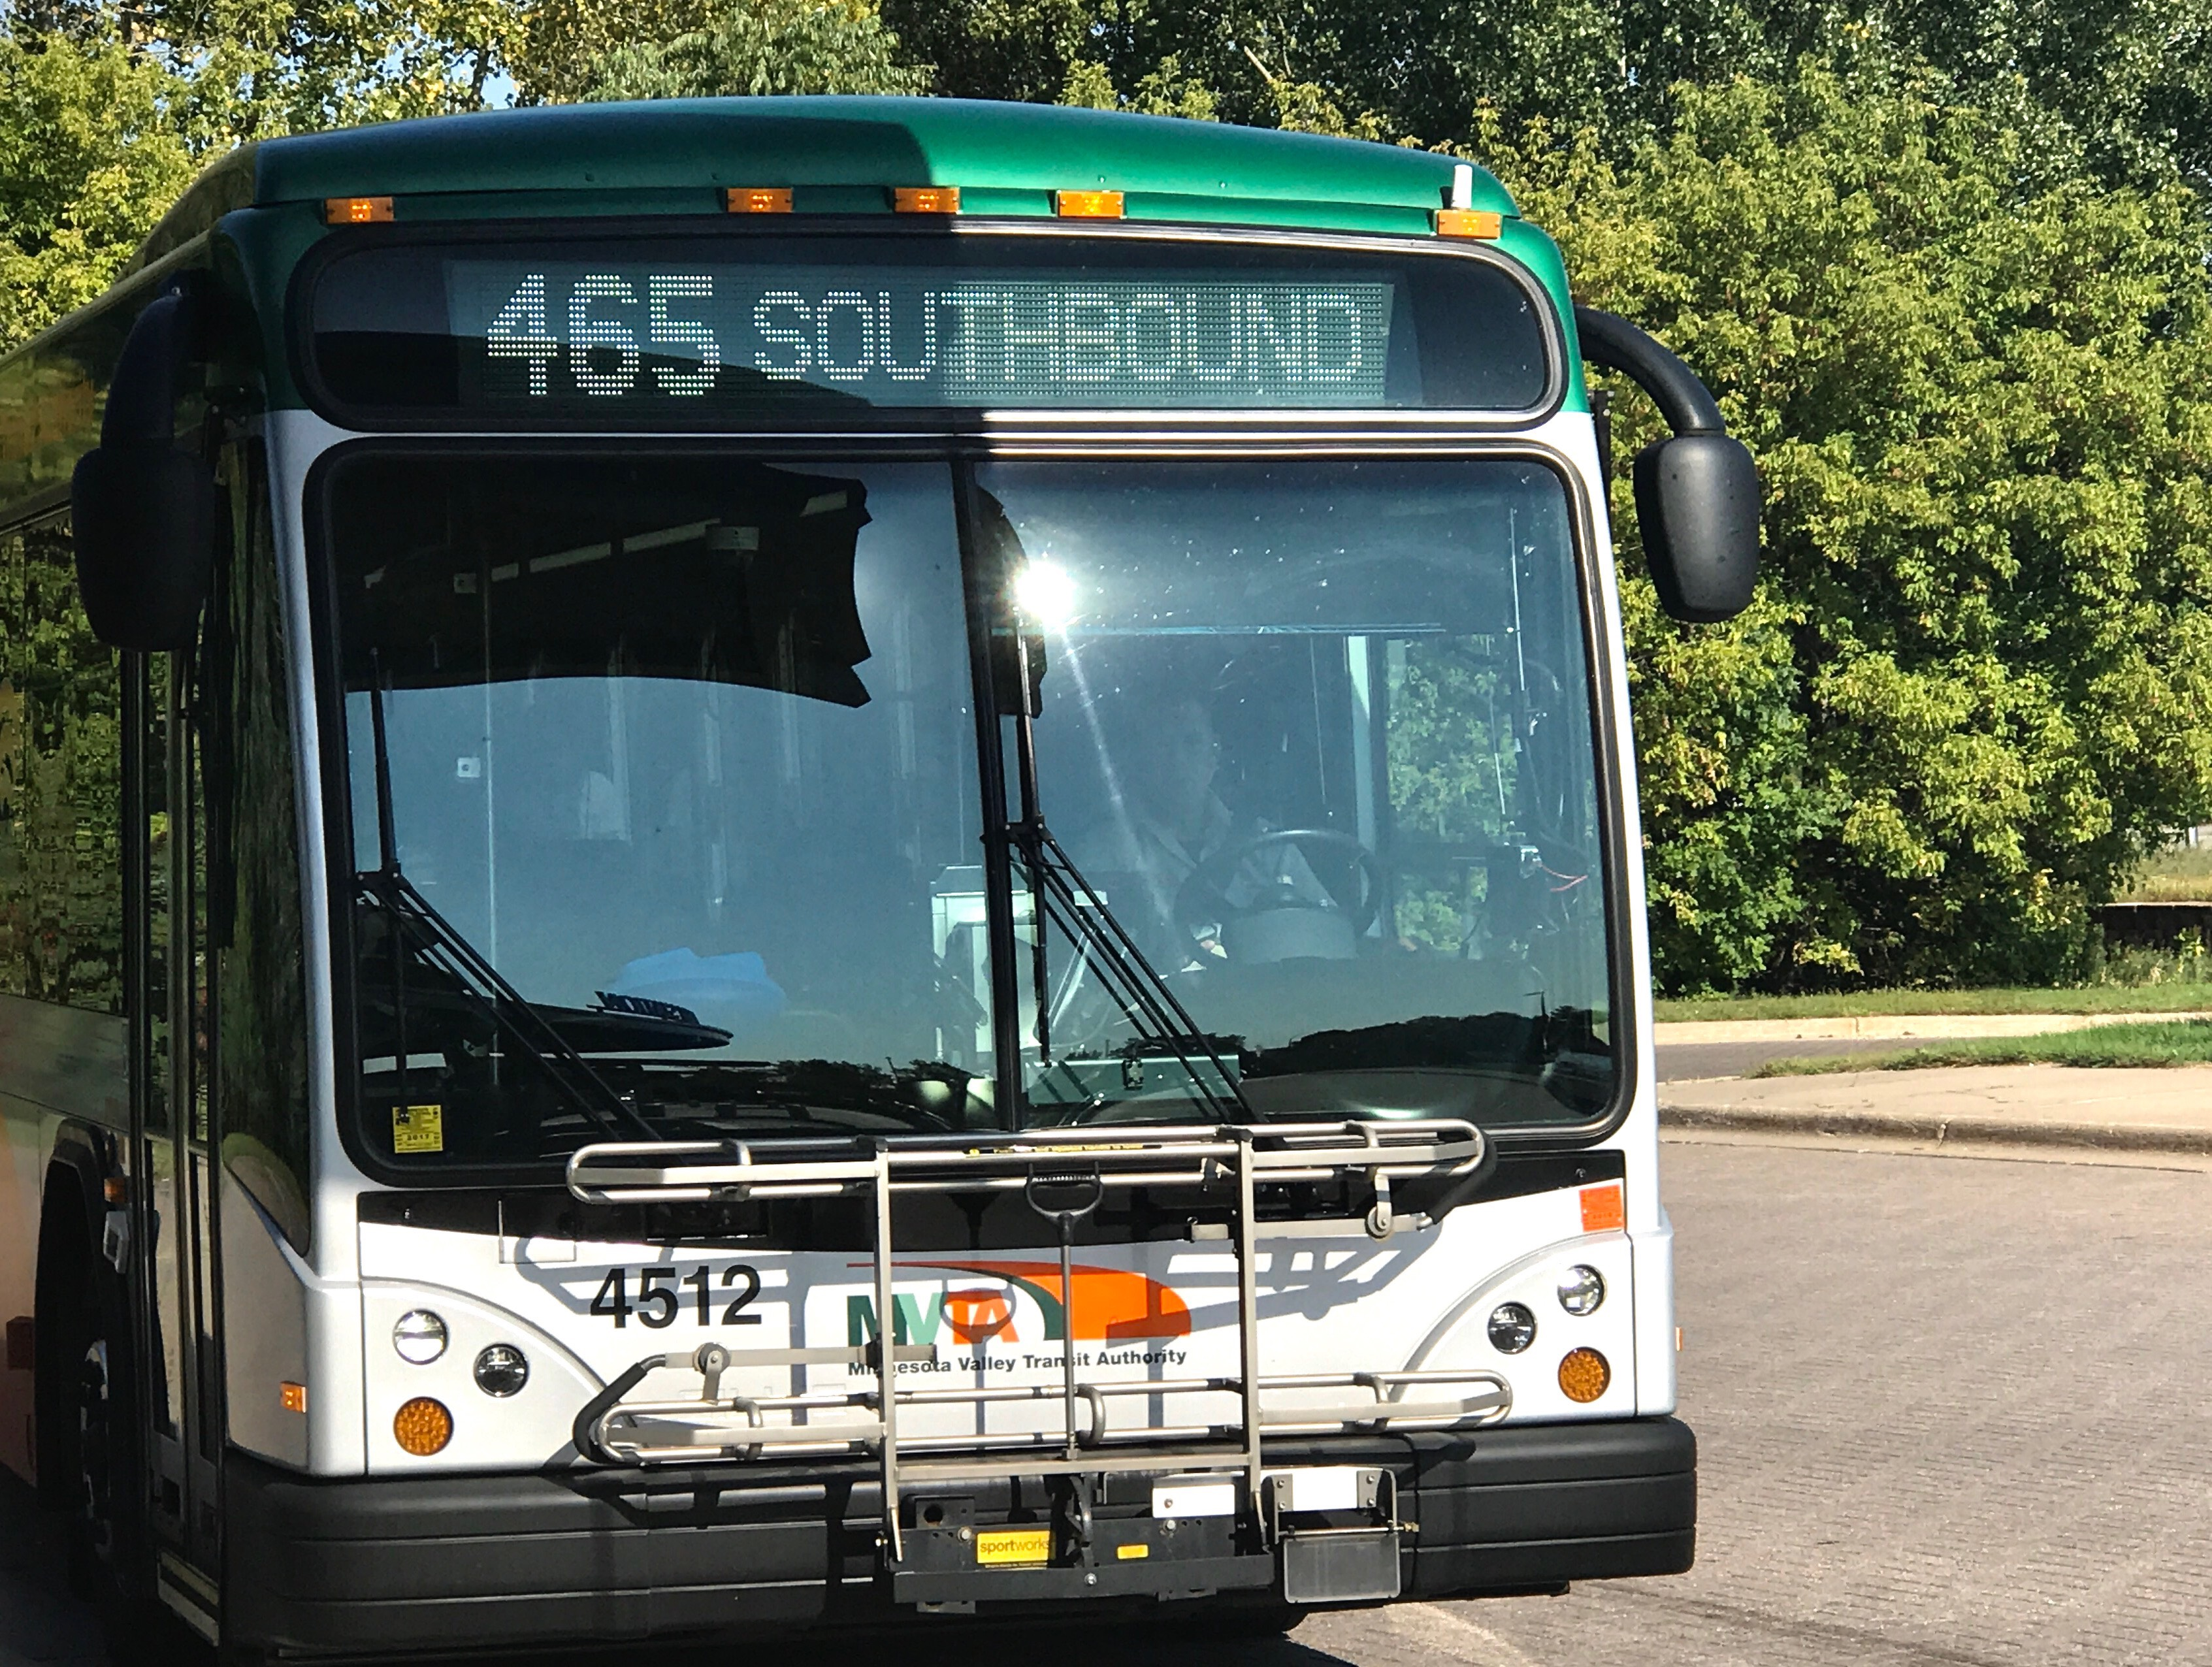 Route 465 has coordinated stops with Route 495 to get people from Minneapolis to Scott County faster than before.